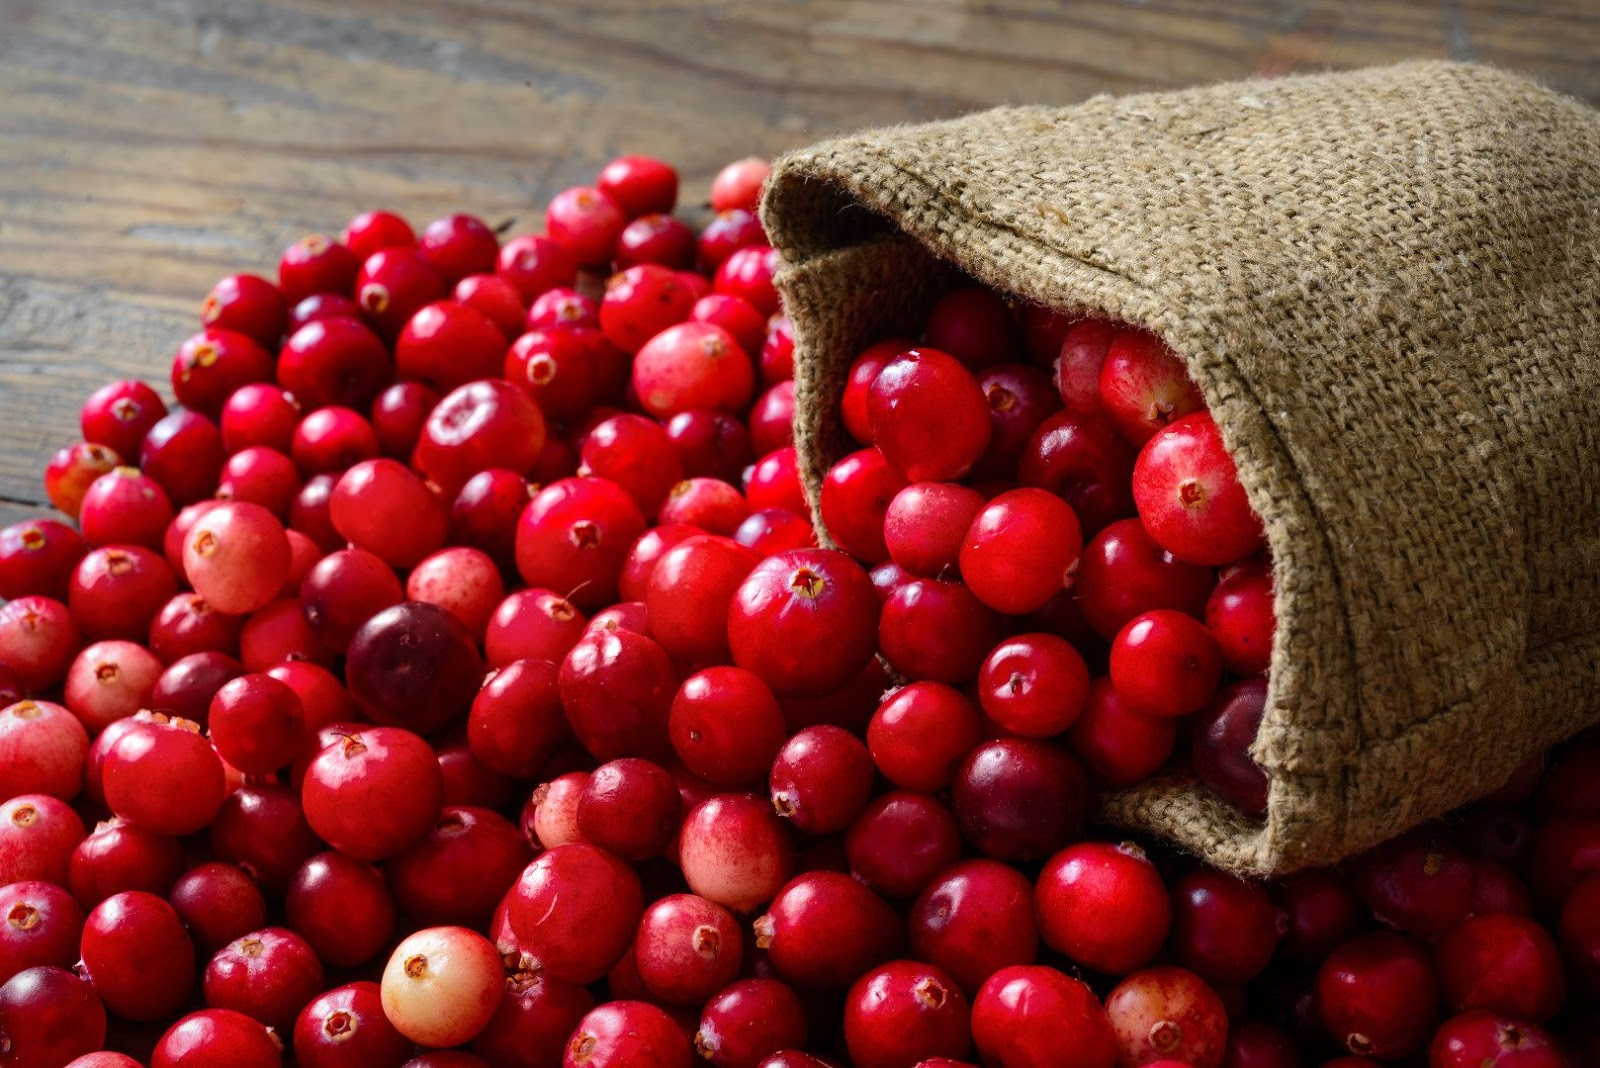 Cranberries for urinary tract health